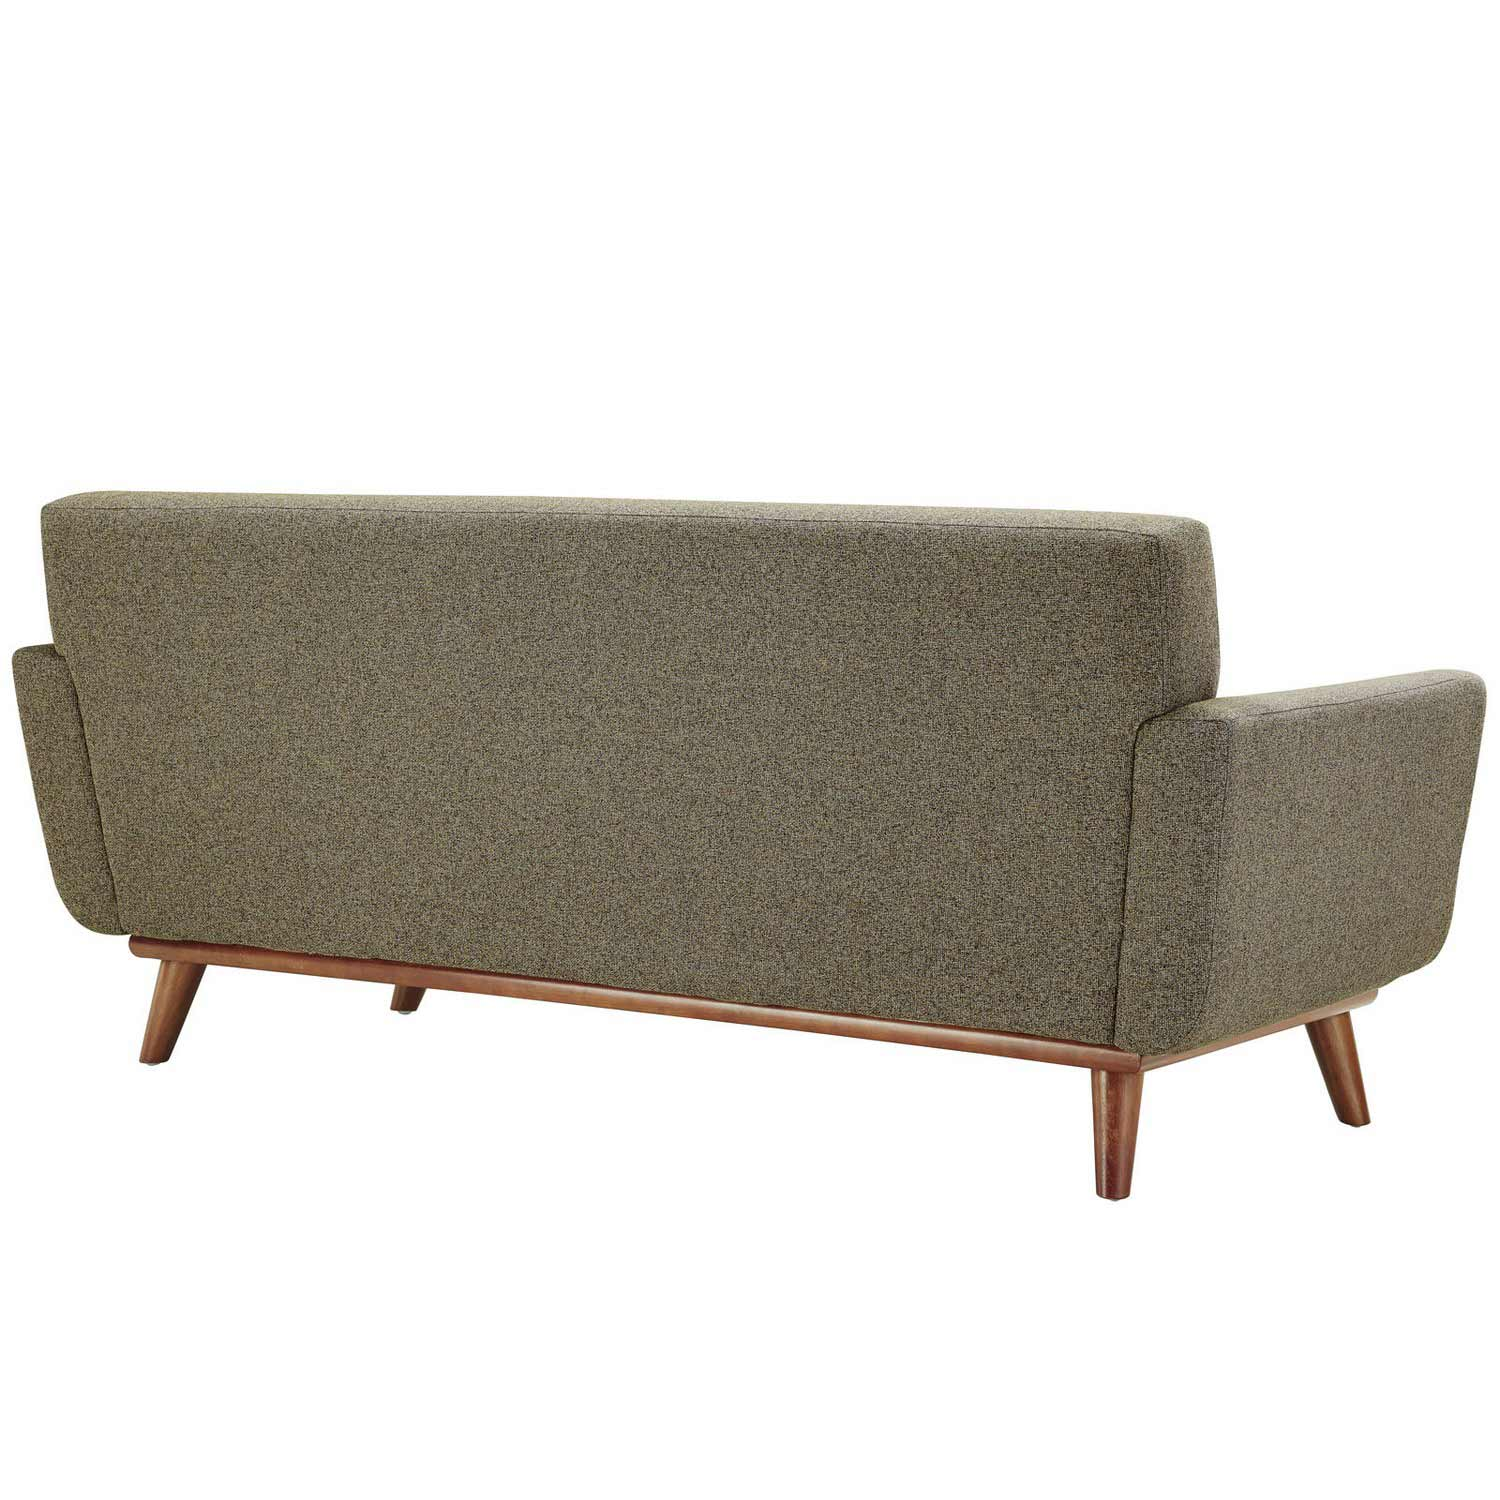 Modway Engage Loveseat and Sofa Set of 2 - Oat